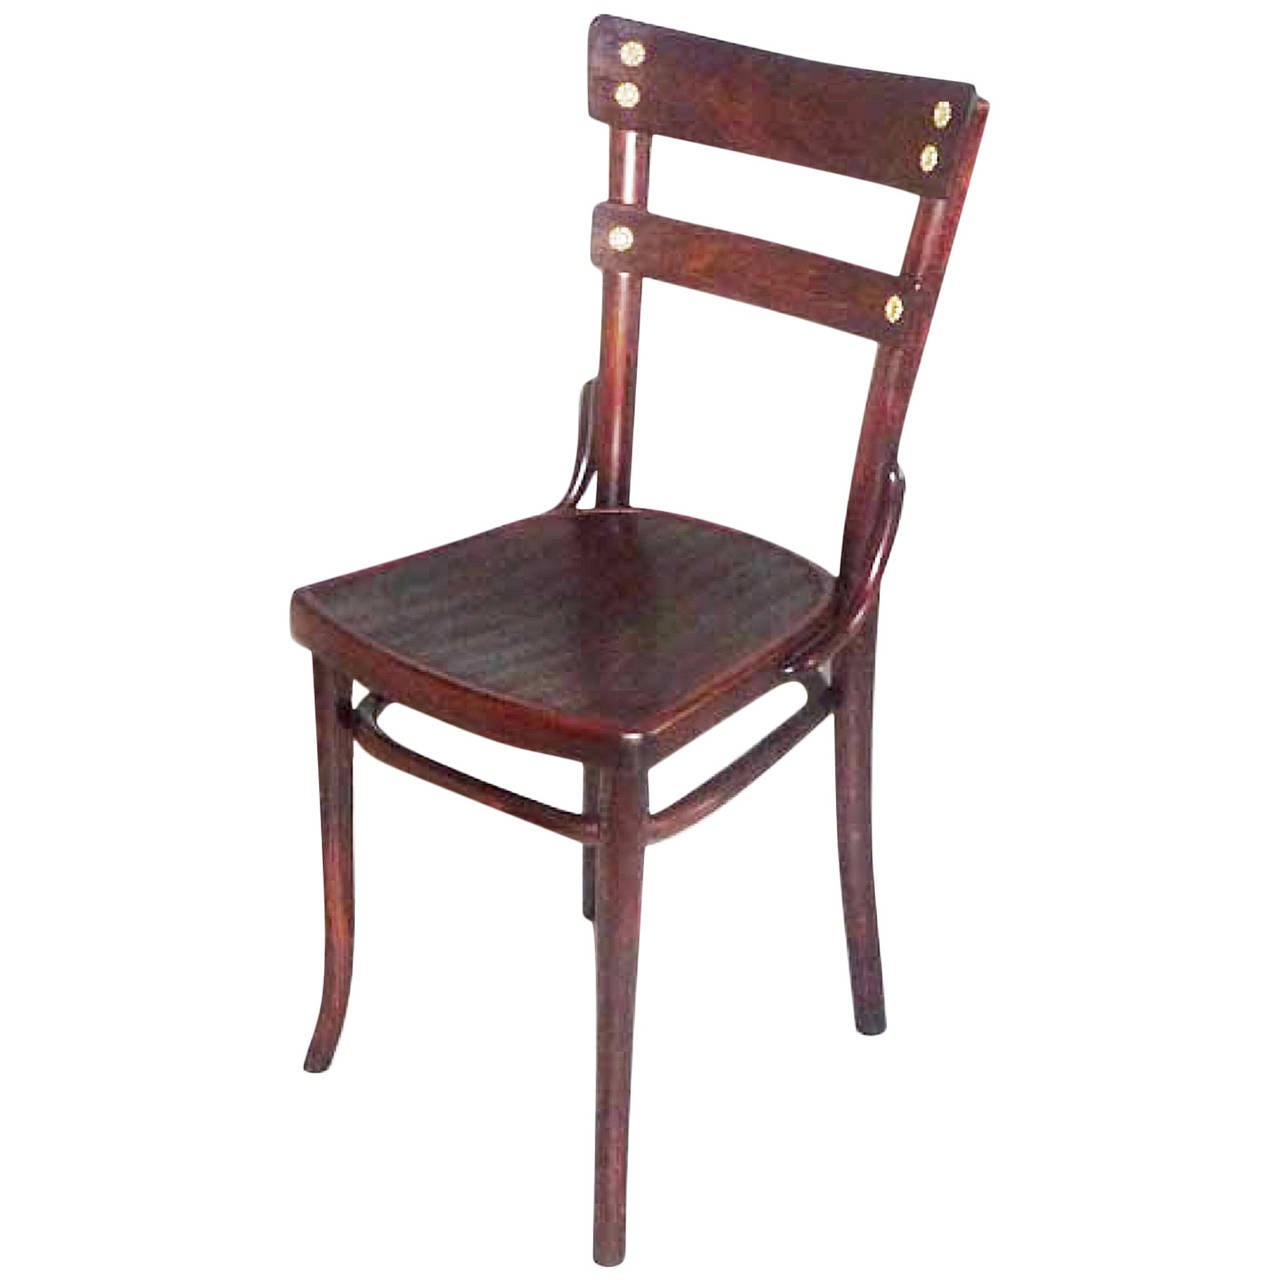 dining chairs for sale transport wheelchair near me thonet room at 1stdibs